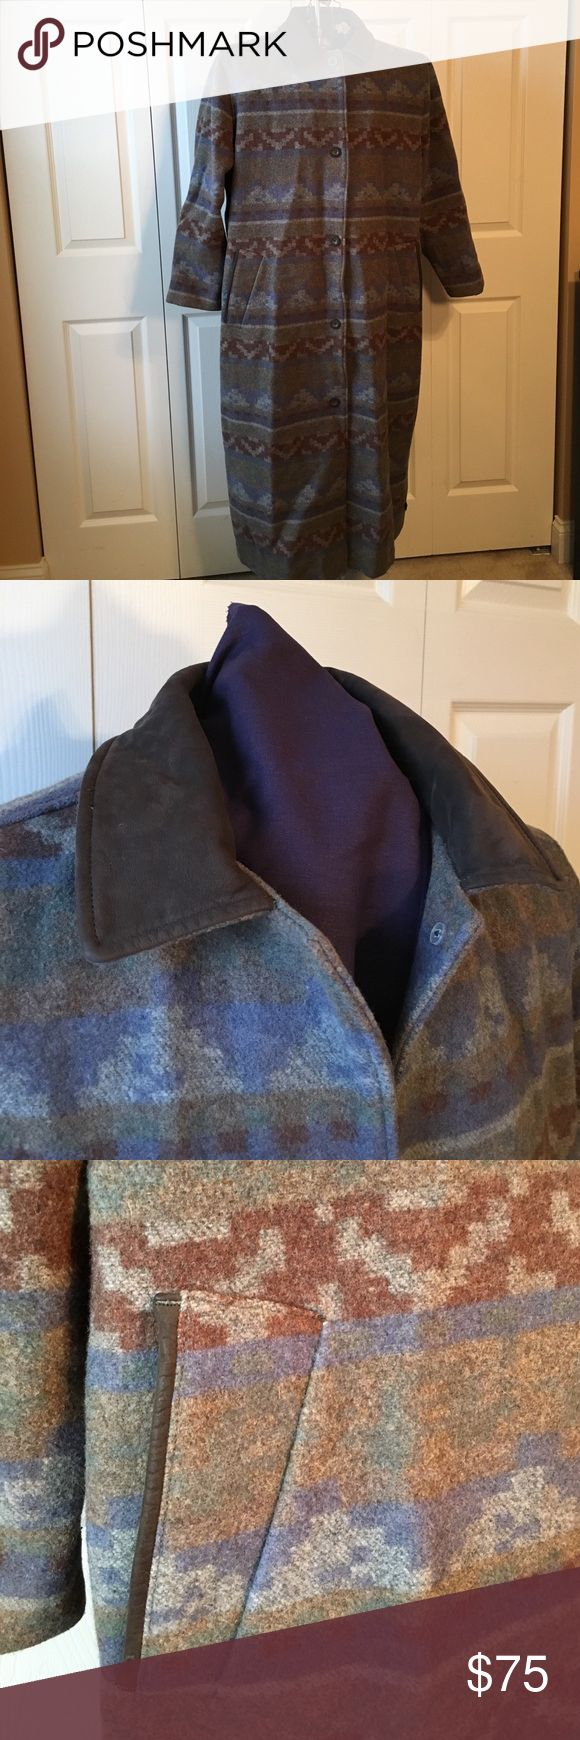 Woolrich Blanket Coat Multi-colored wool blend coat with 1 interior and 2 exterior pockets. Button kick pleat on lower, back hem. Brown suede collar. In great condition with light wear. Woolrich Jackets & Coats Trench Coats